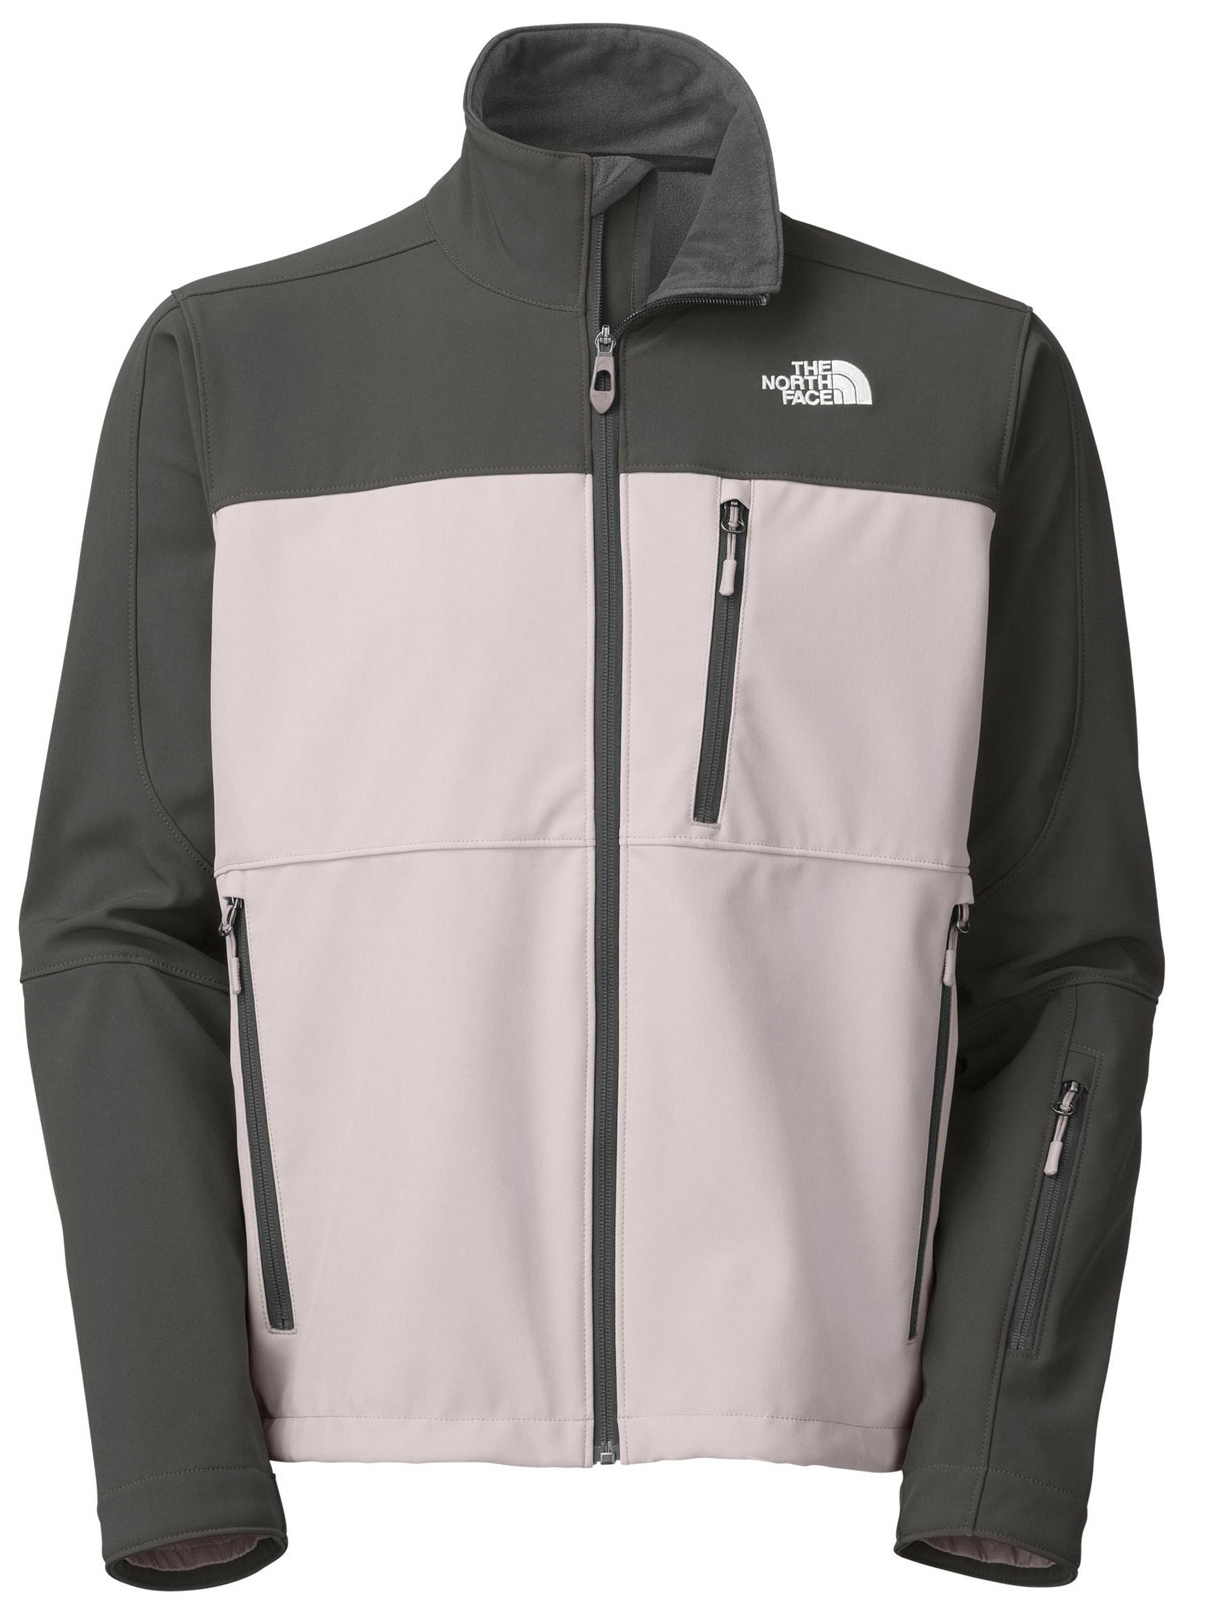 "A streamlined and progressive soft shell that provides maximum breathability and agility on the hill. Key Features of The North Face Palmyra Softshell Jacket: Avg Weight: 770 g (27.16 oz) Center back: 28"" Fabric: 339 g/m² TNF Apex ClimateBlock with fleece backer;55% polyester, 39% nylon, 6% elastane (bluesign approved fabric) Water-resistant, breathable Zip chest pocket Zip hand pockets Wrist accessory pocket Internal seam zipper Adjustable hem system - $137.95"